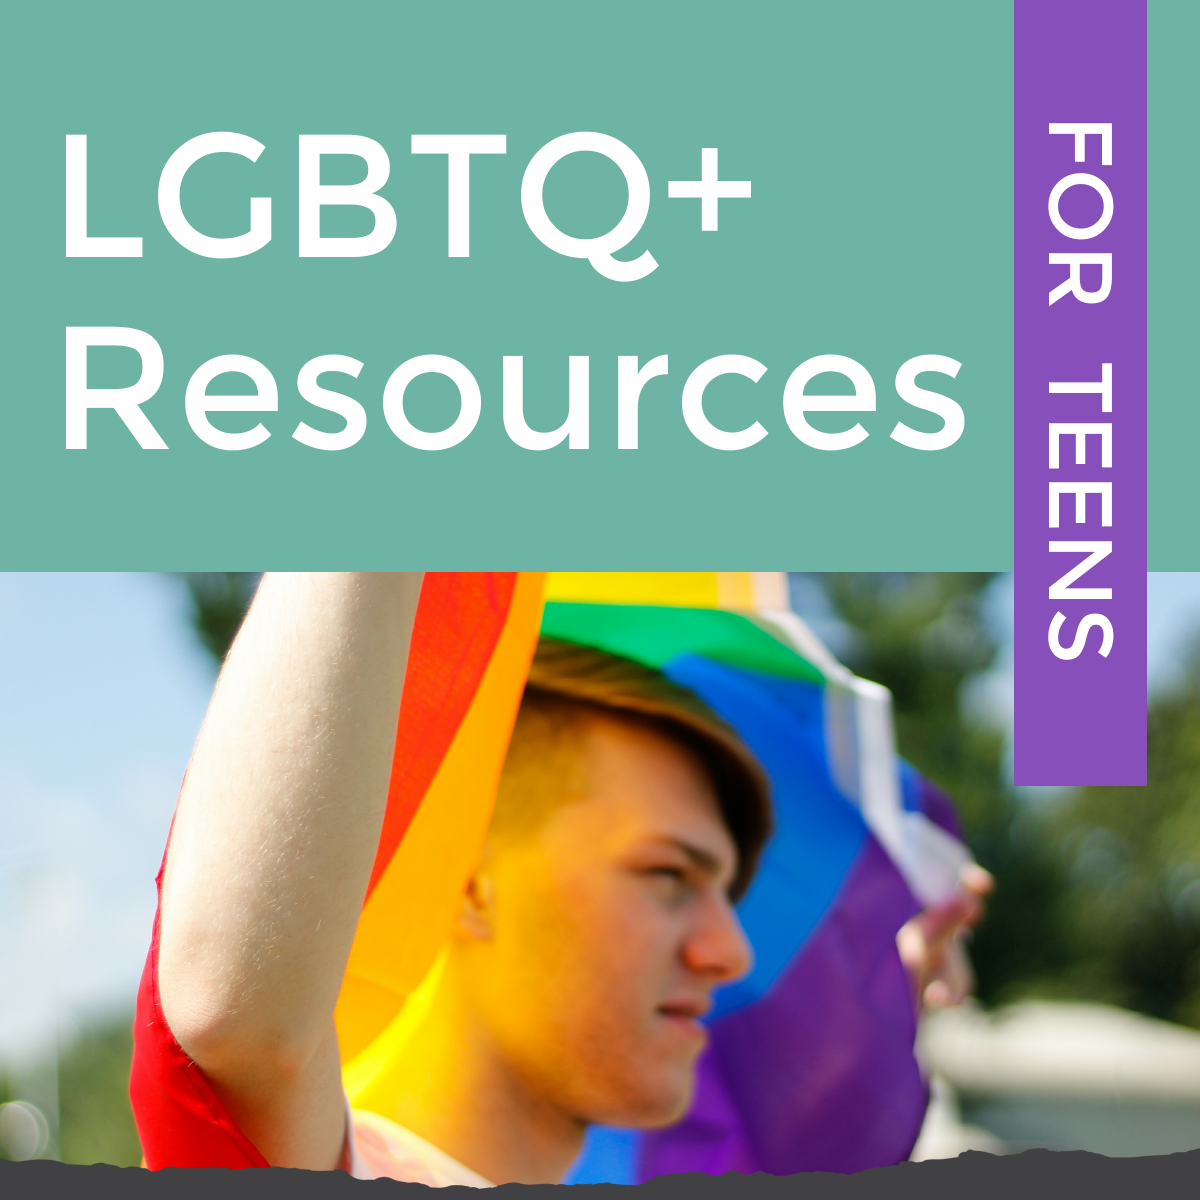 lgbtq+ resources for teens